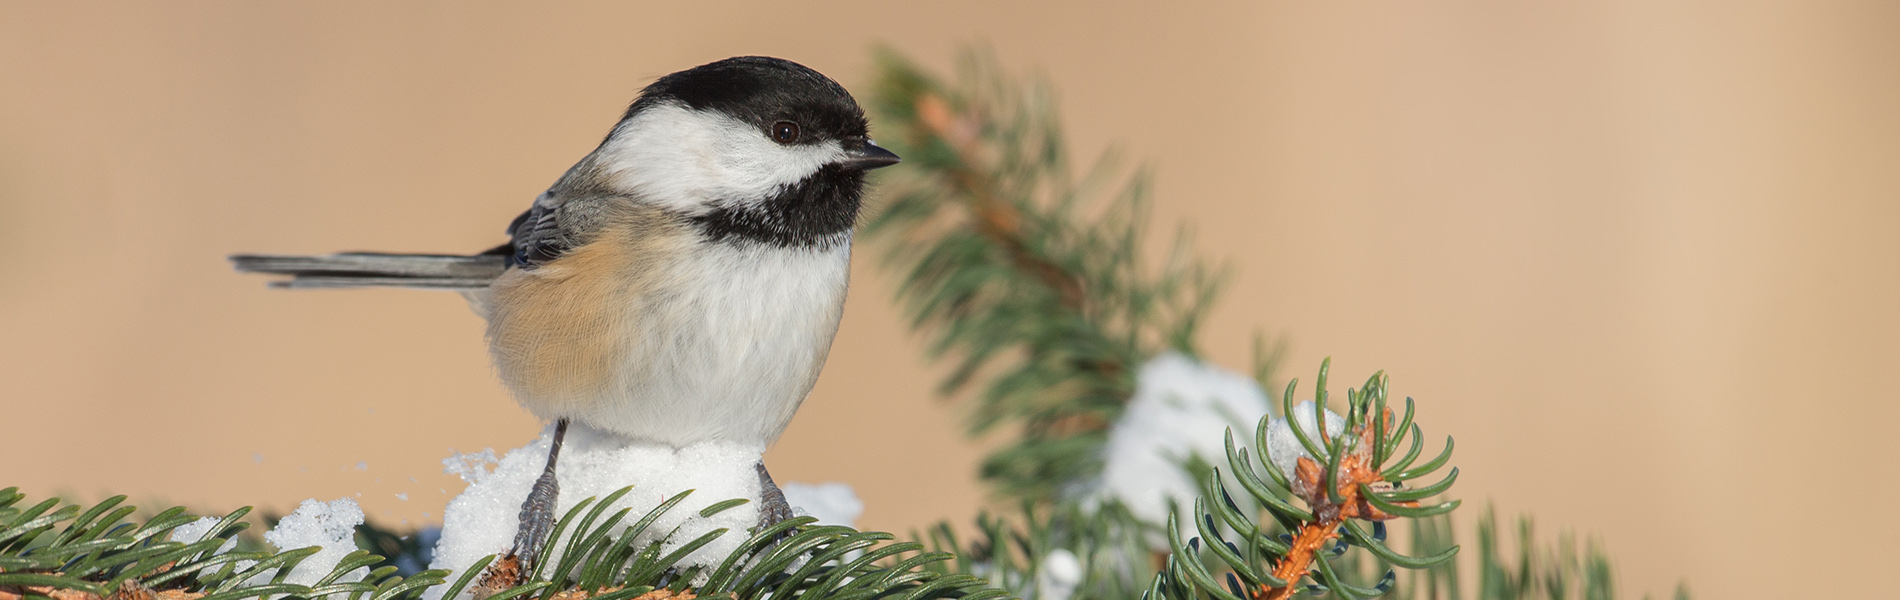 Making your own suet for birds this winter!